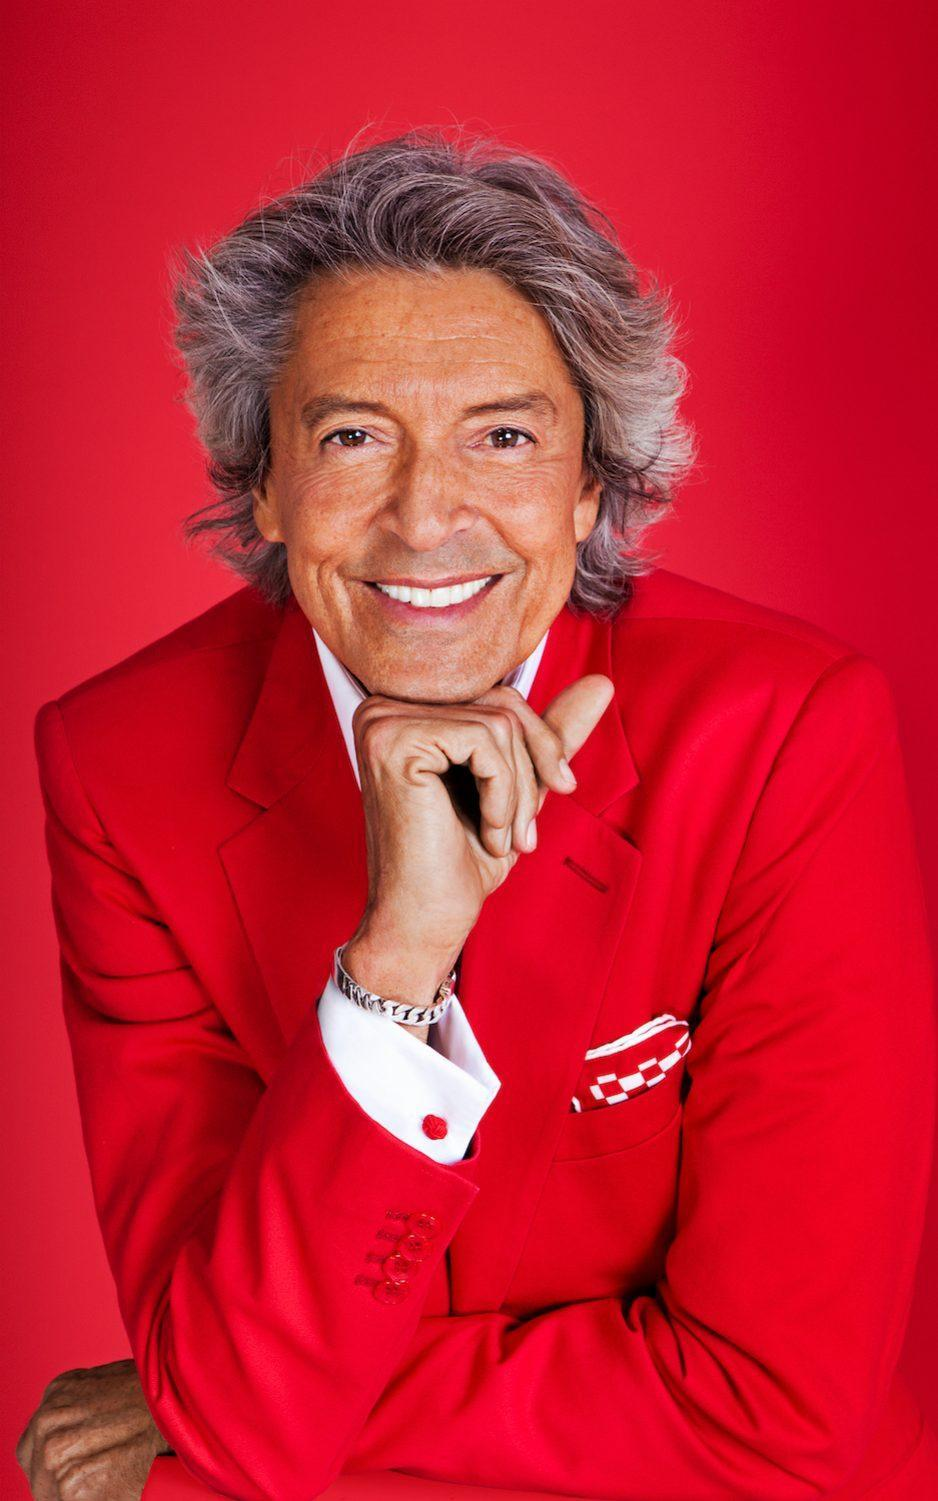 Song-and-dance man Tommy Tune has won 10 Tony Awards for acting, directing and choreography - Franco Lacosta